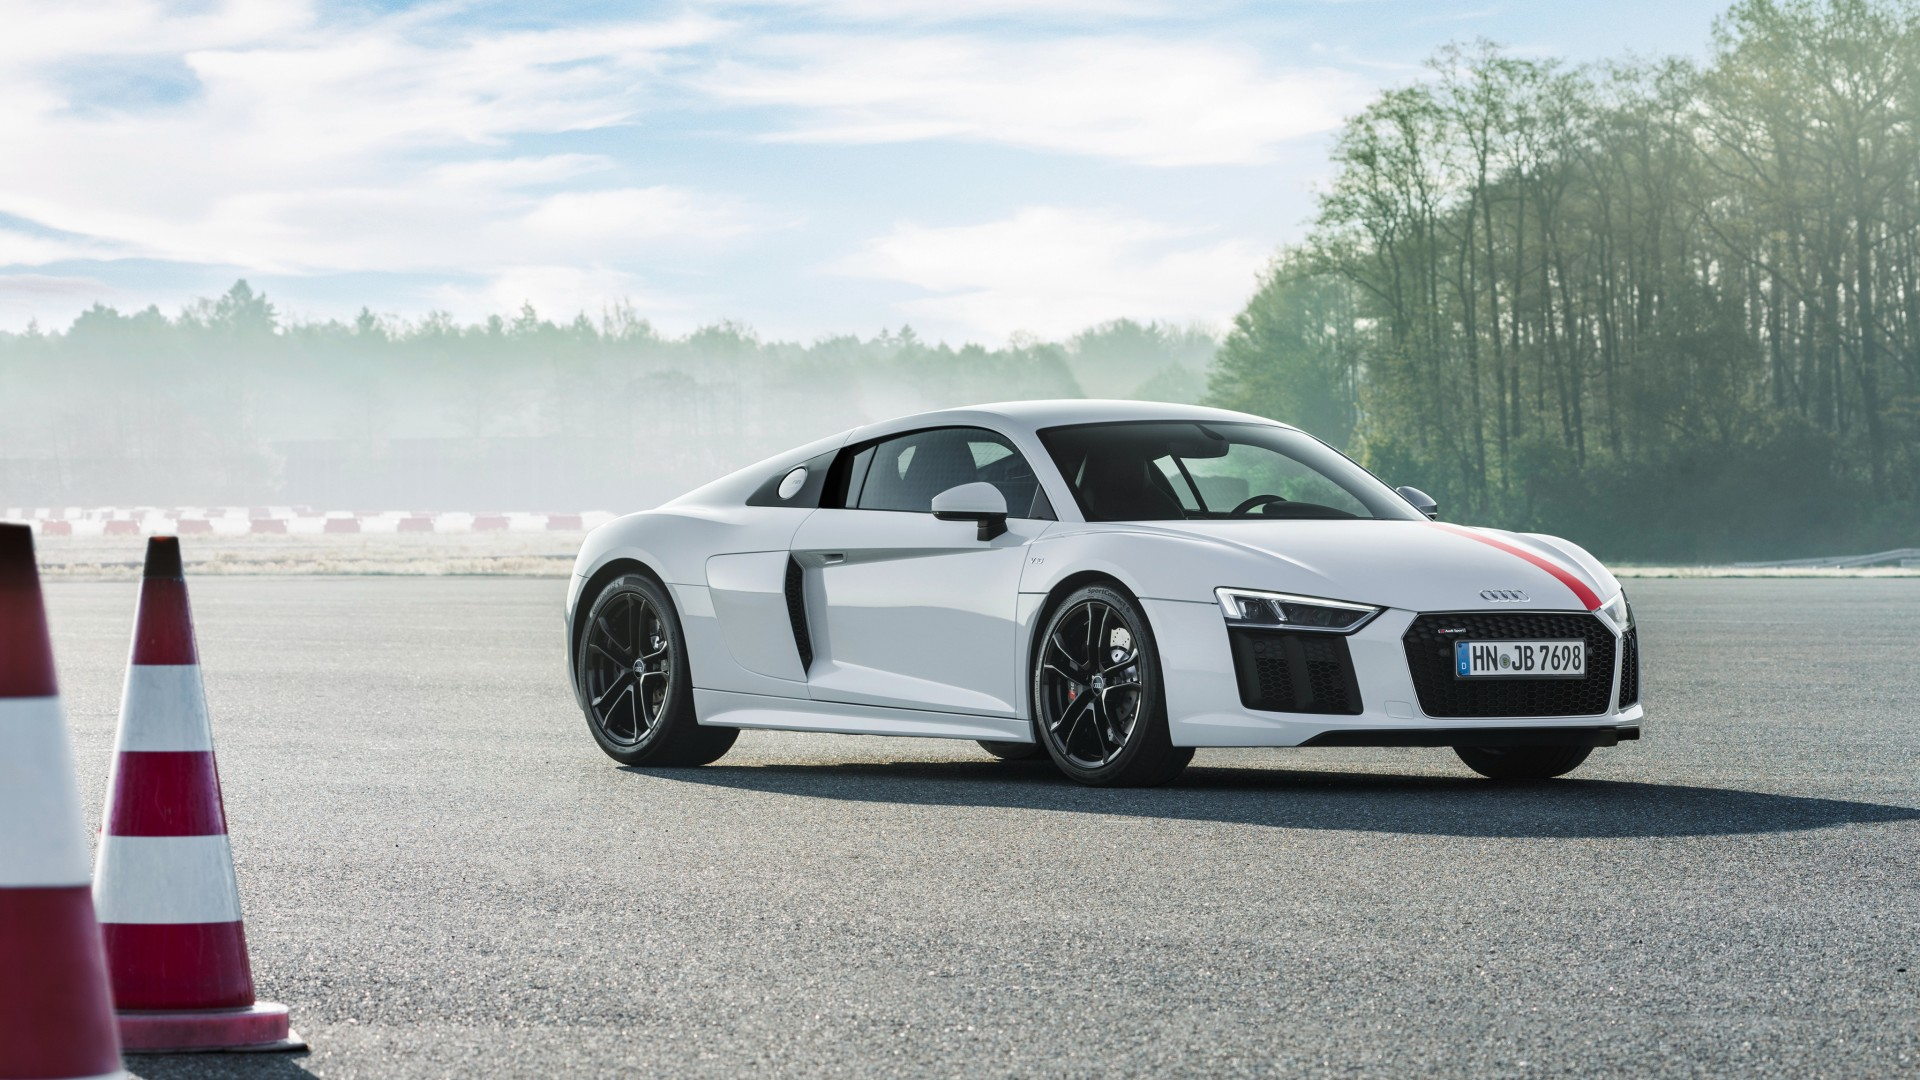 Audi R8 V10 Rws 2018 4k 4 Wallpaper Hd Car Wallpapers